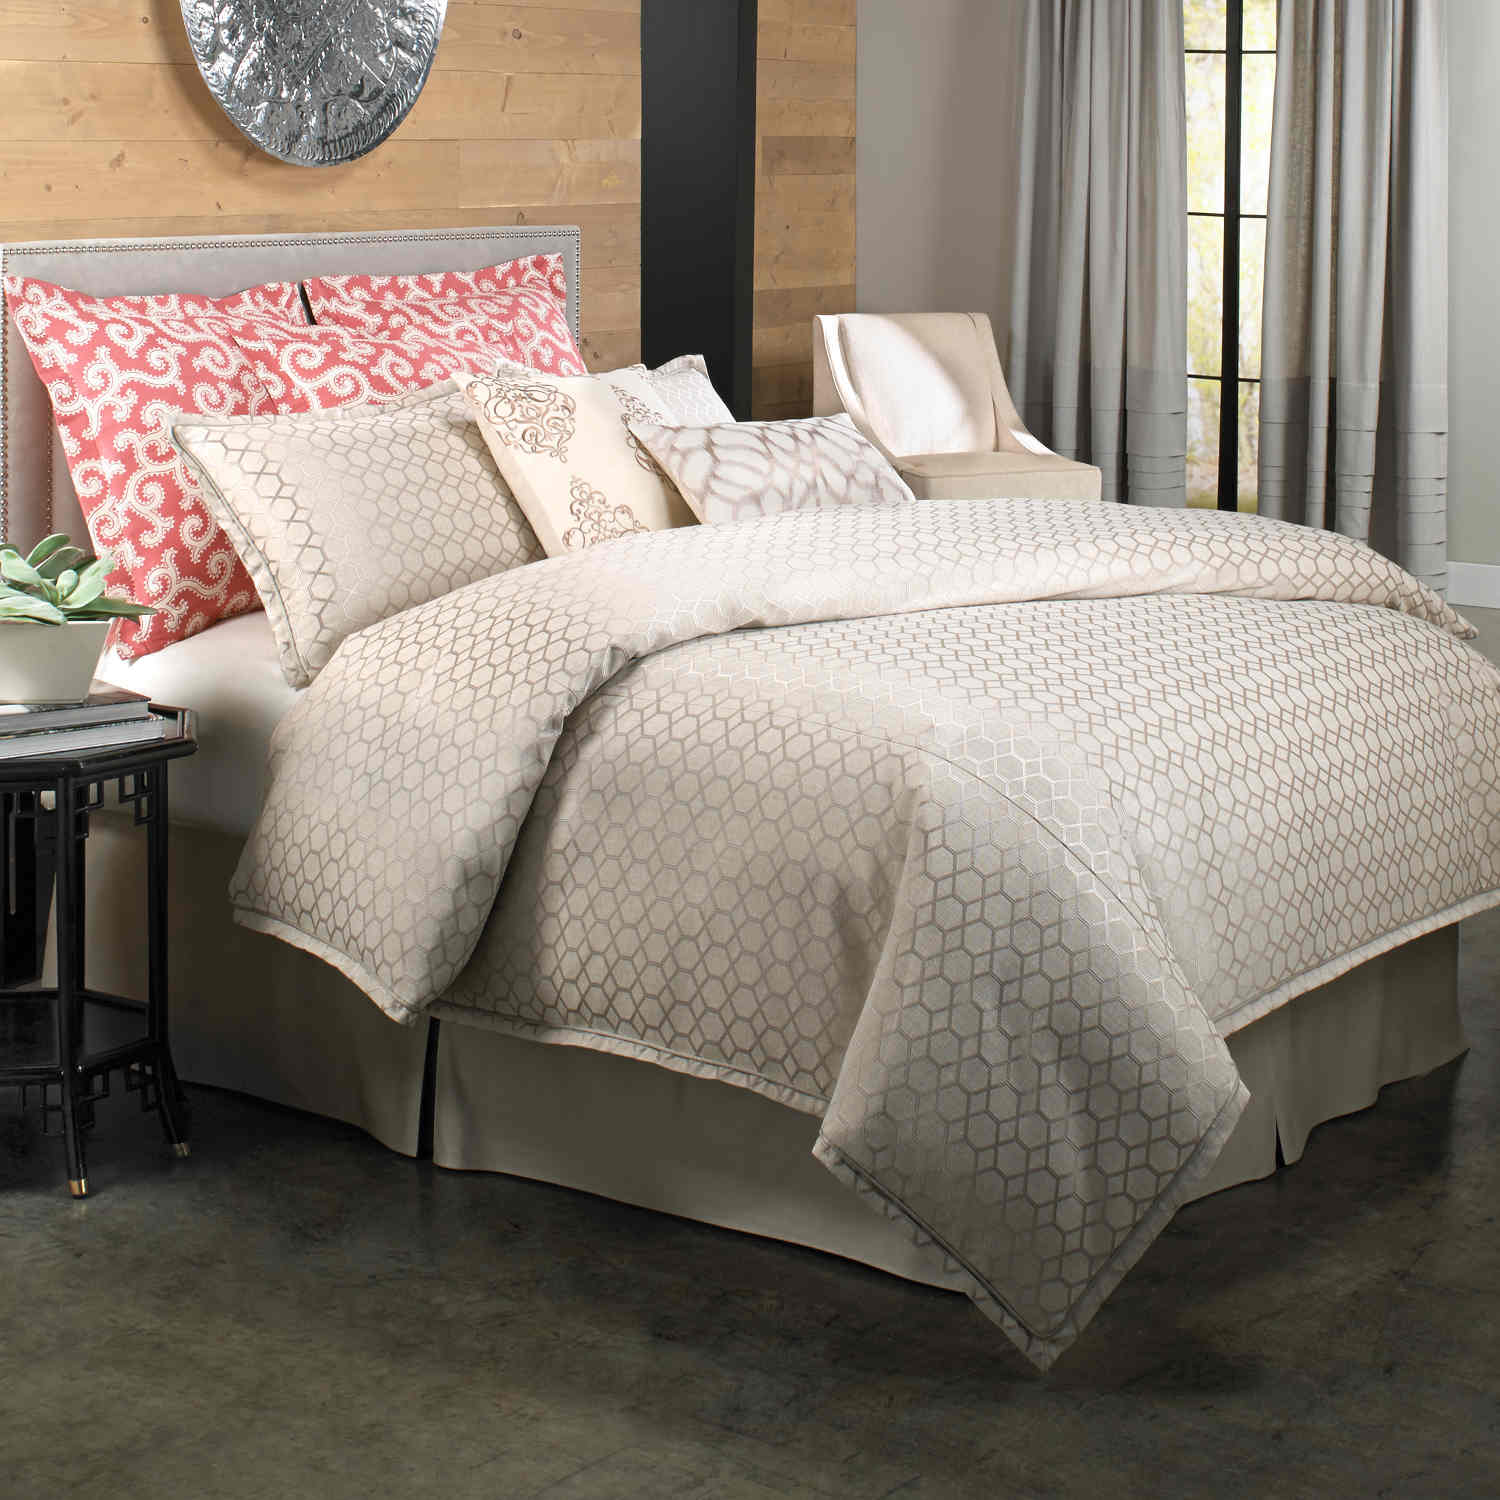 wildcat territory bedding bijan collection -